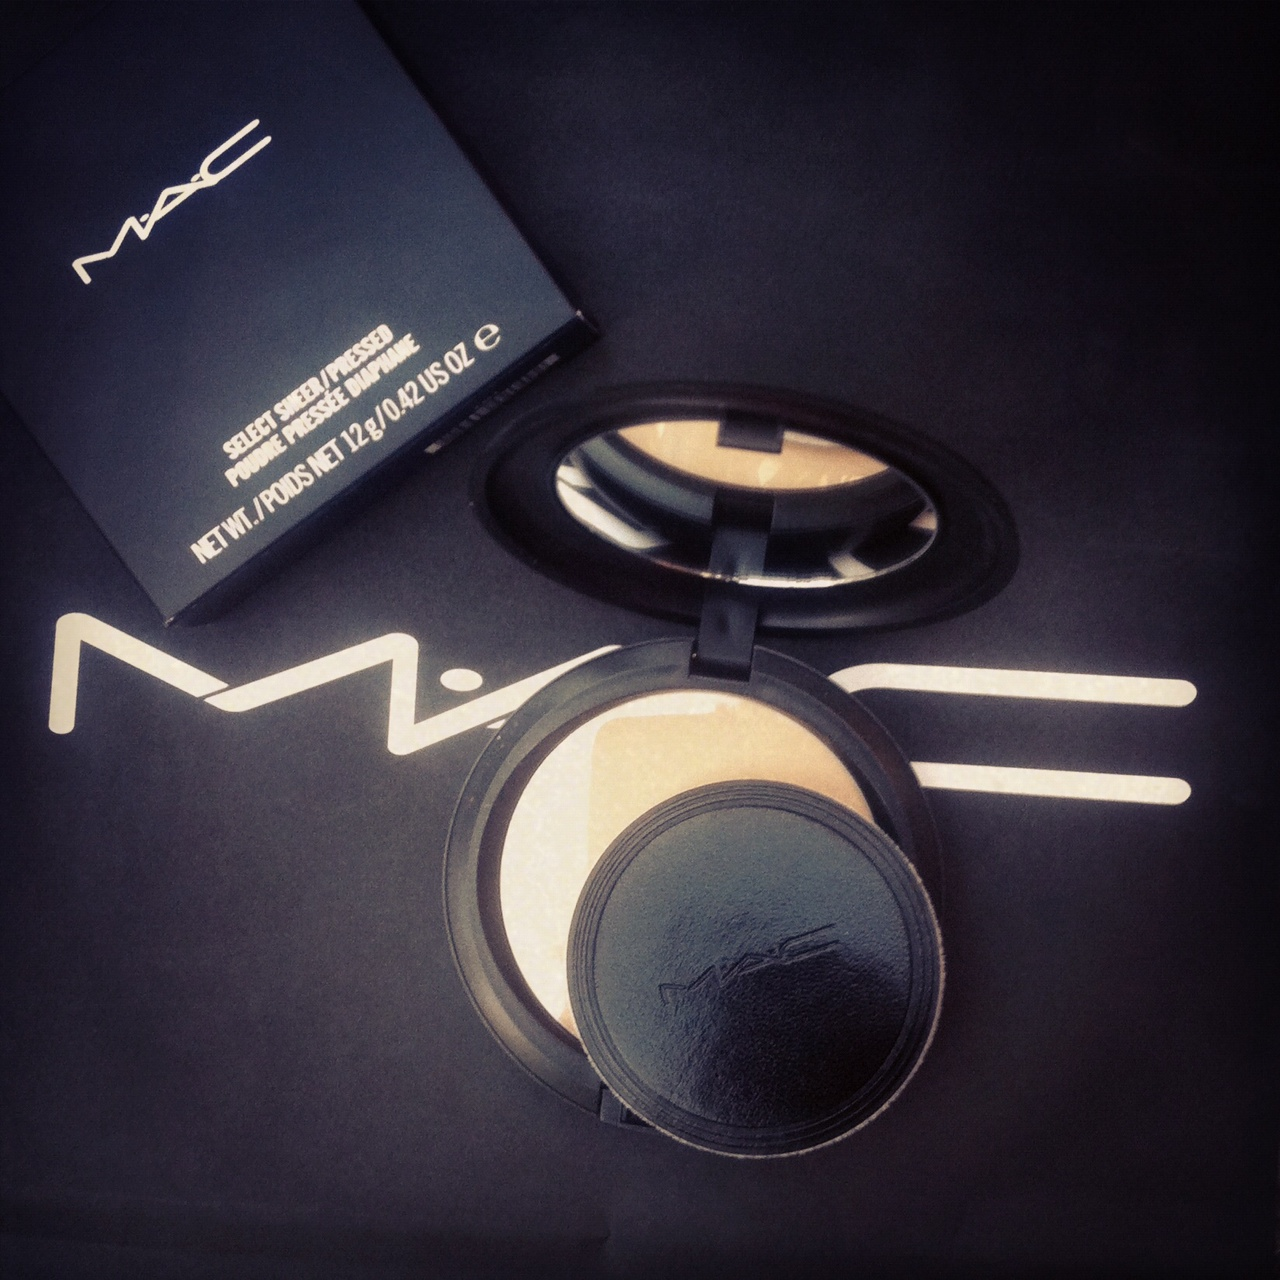 Liebliiiiingsprodukteeeee!!! // MAC SELECT SHEER PRESSED POWDER